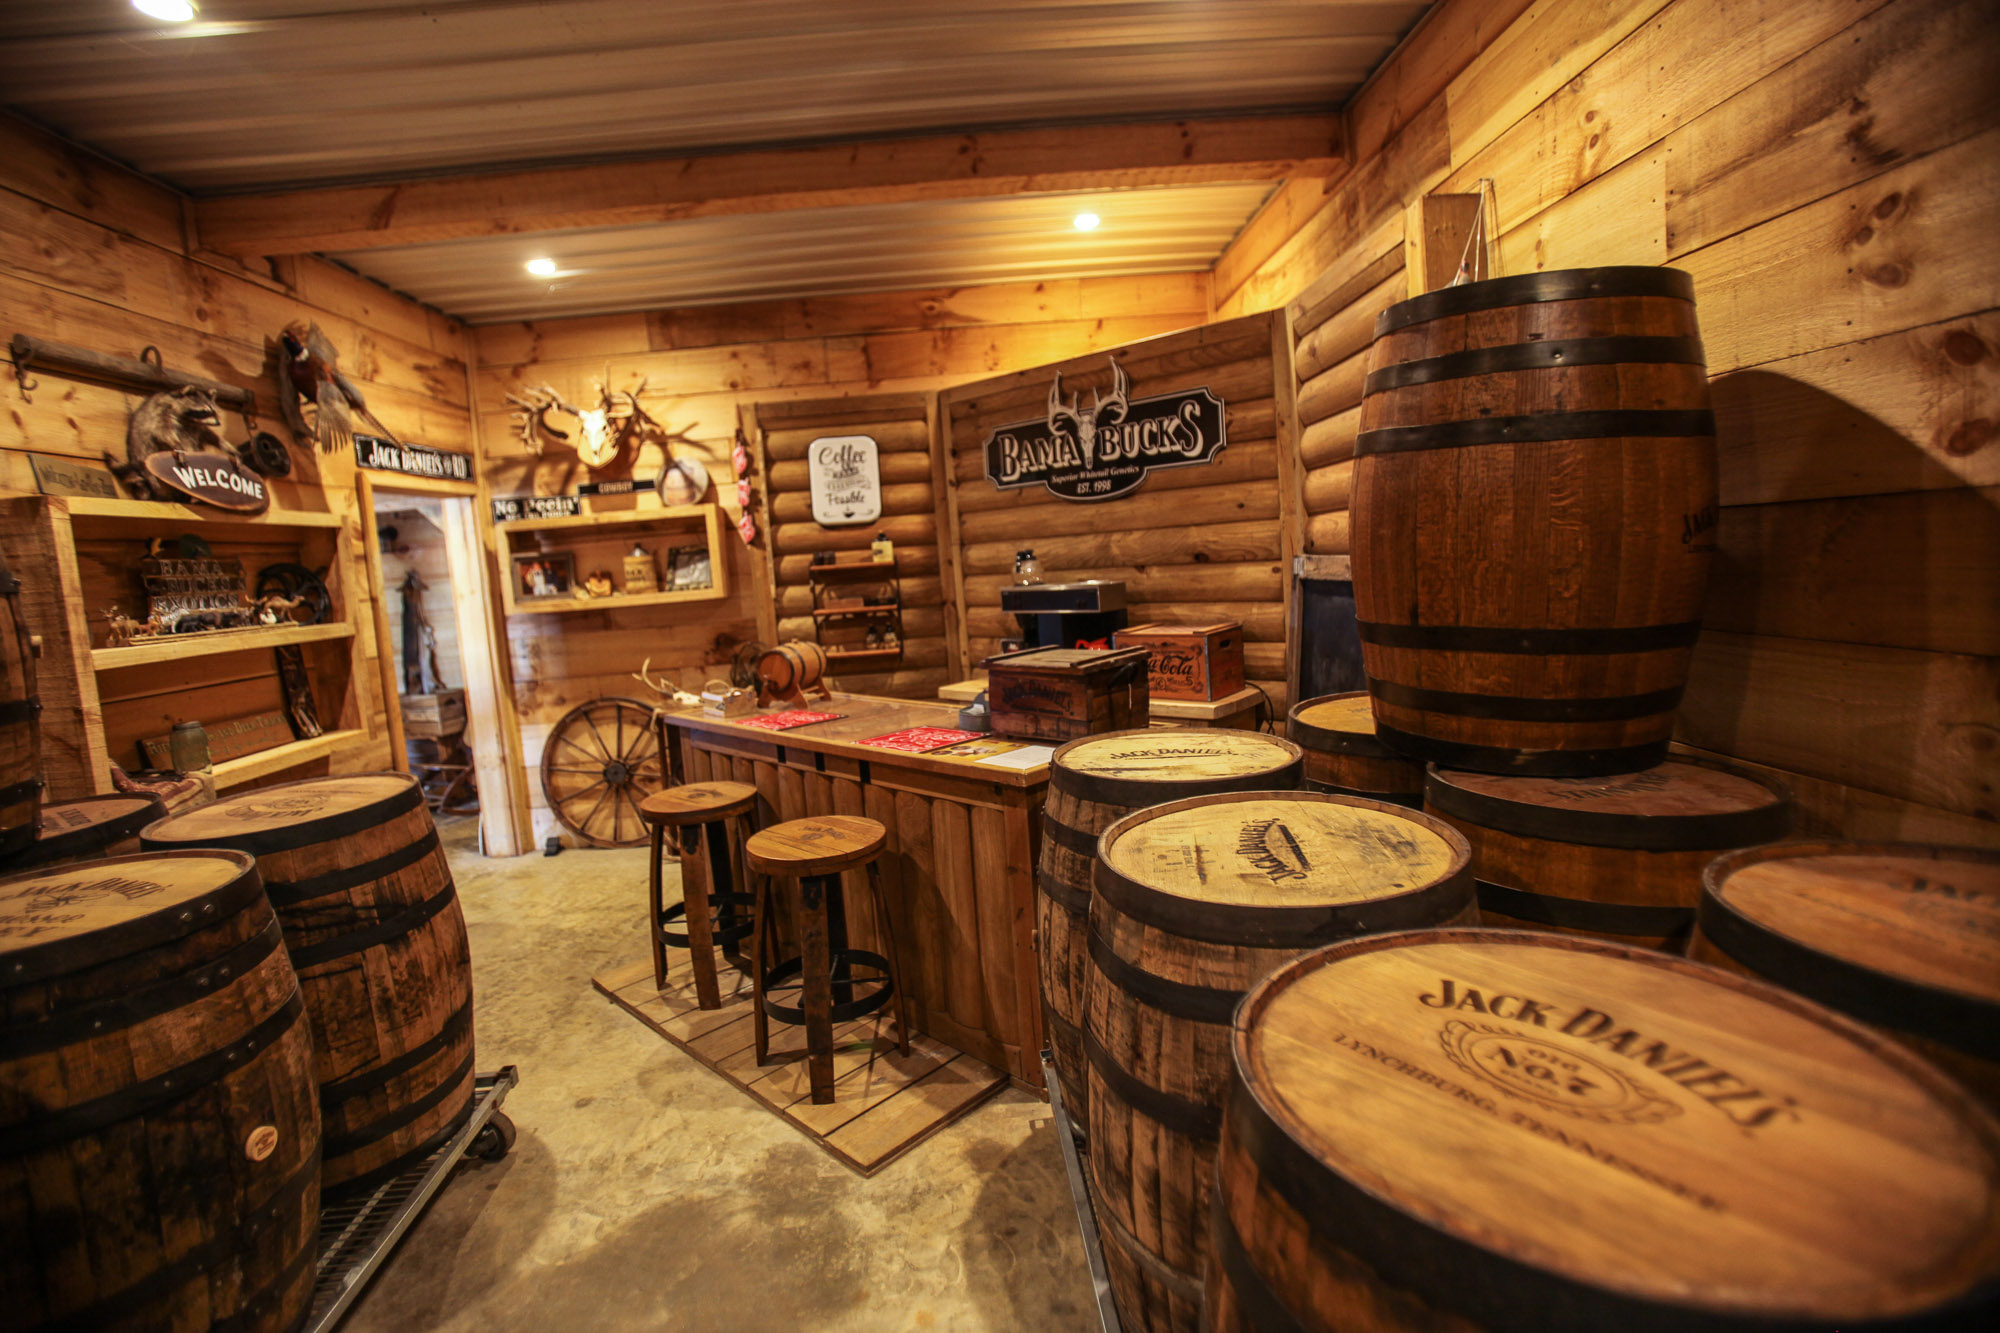 Just a few steps from the antique barn we have a large collections of Jack Daniel Barrels available for purchase.